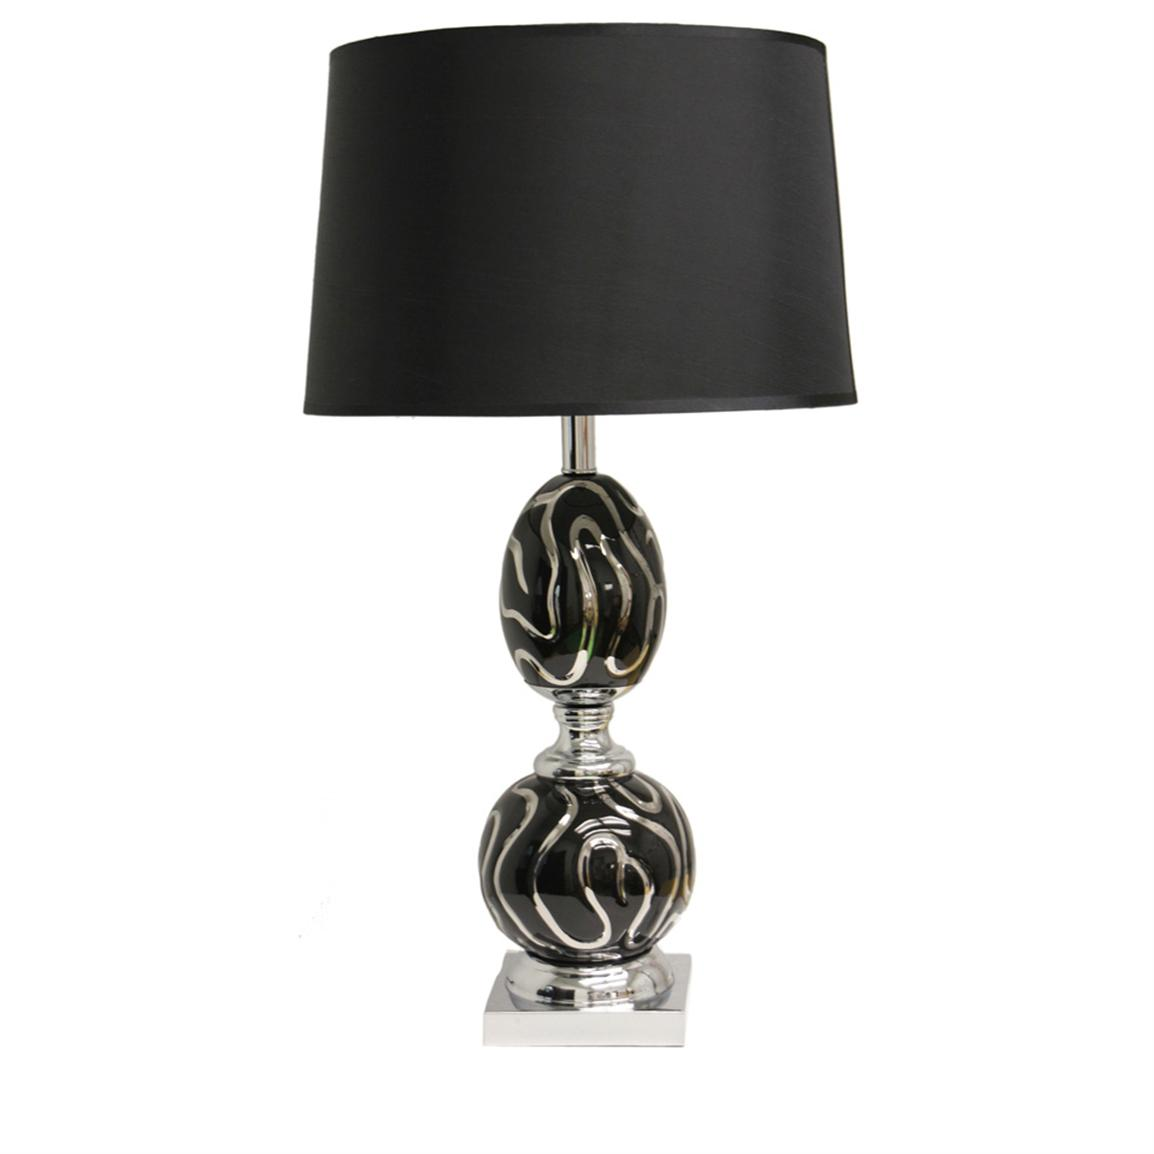 Polaris® Black Psychedelic Table Lamp